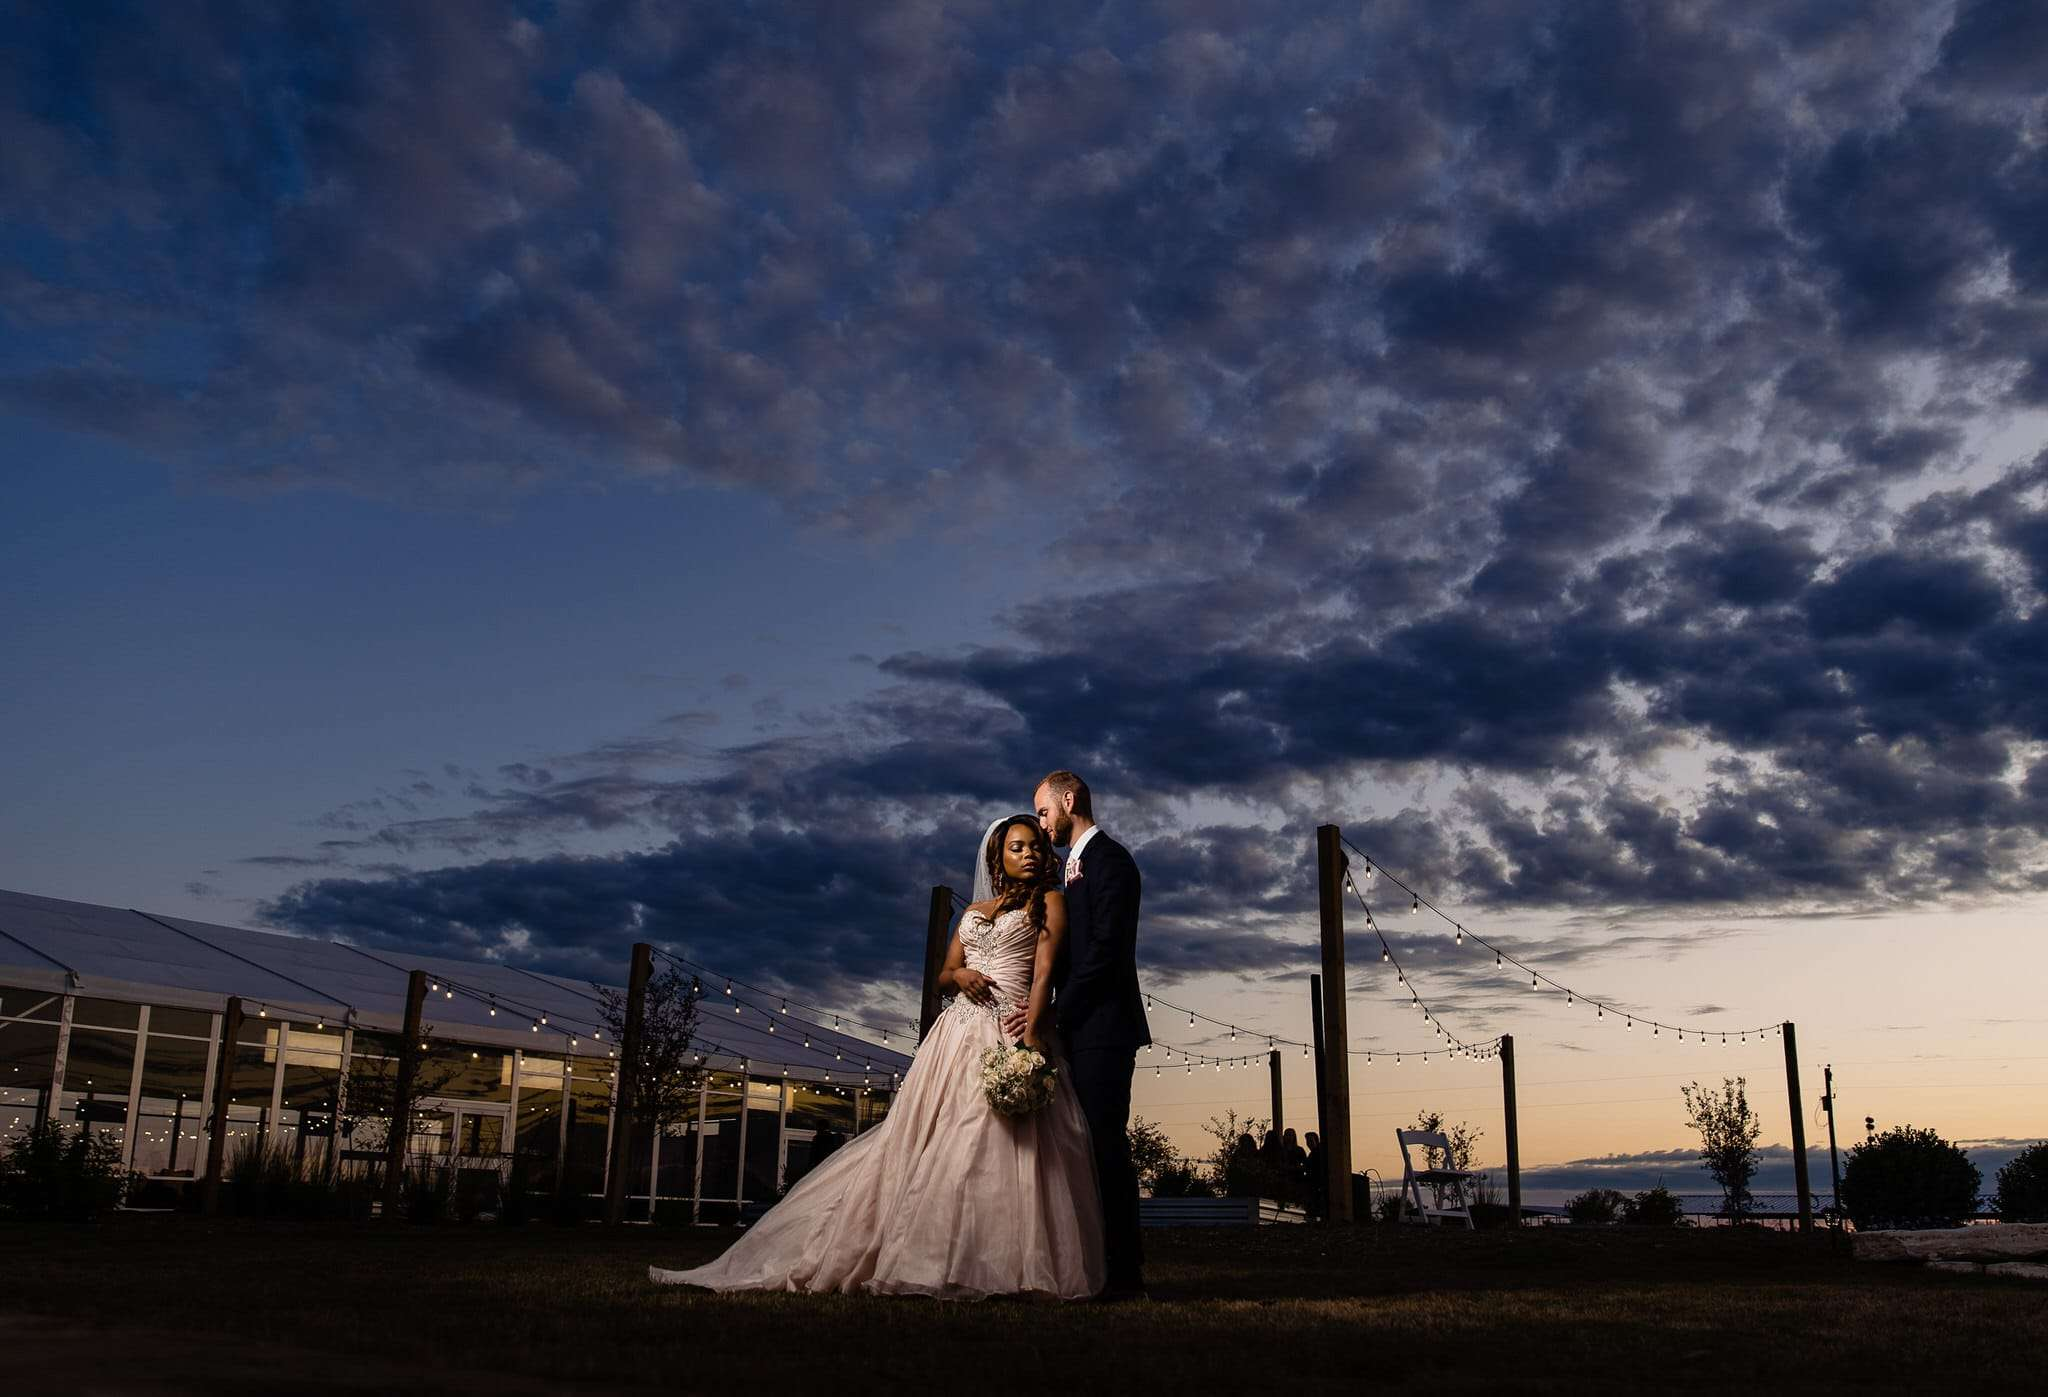 best austin wedding photographer john winters photography sunset photo austin texas enchanted ranch san marcos